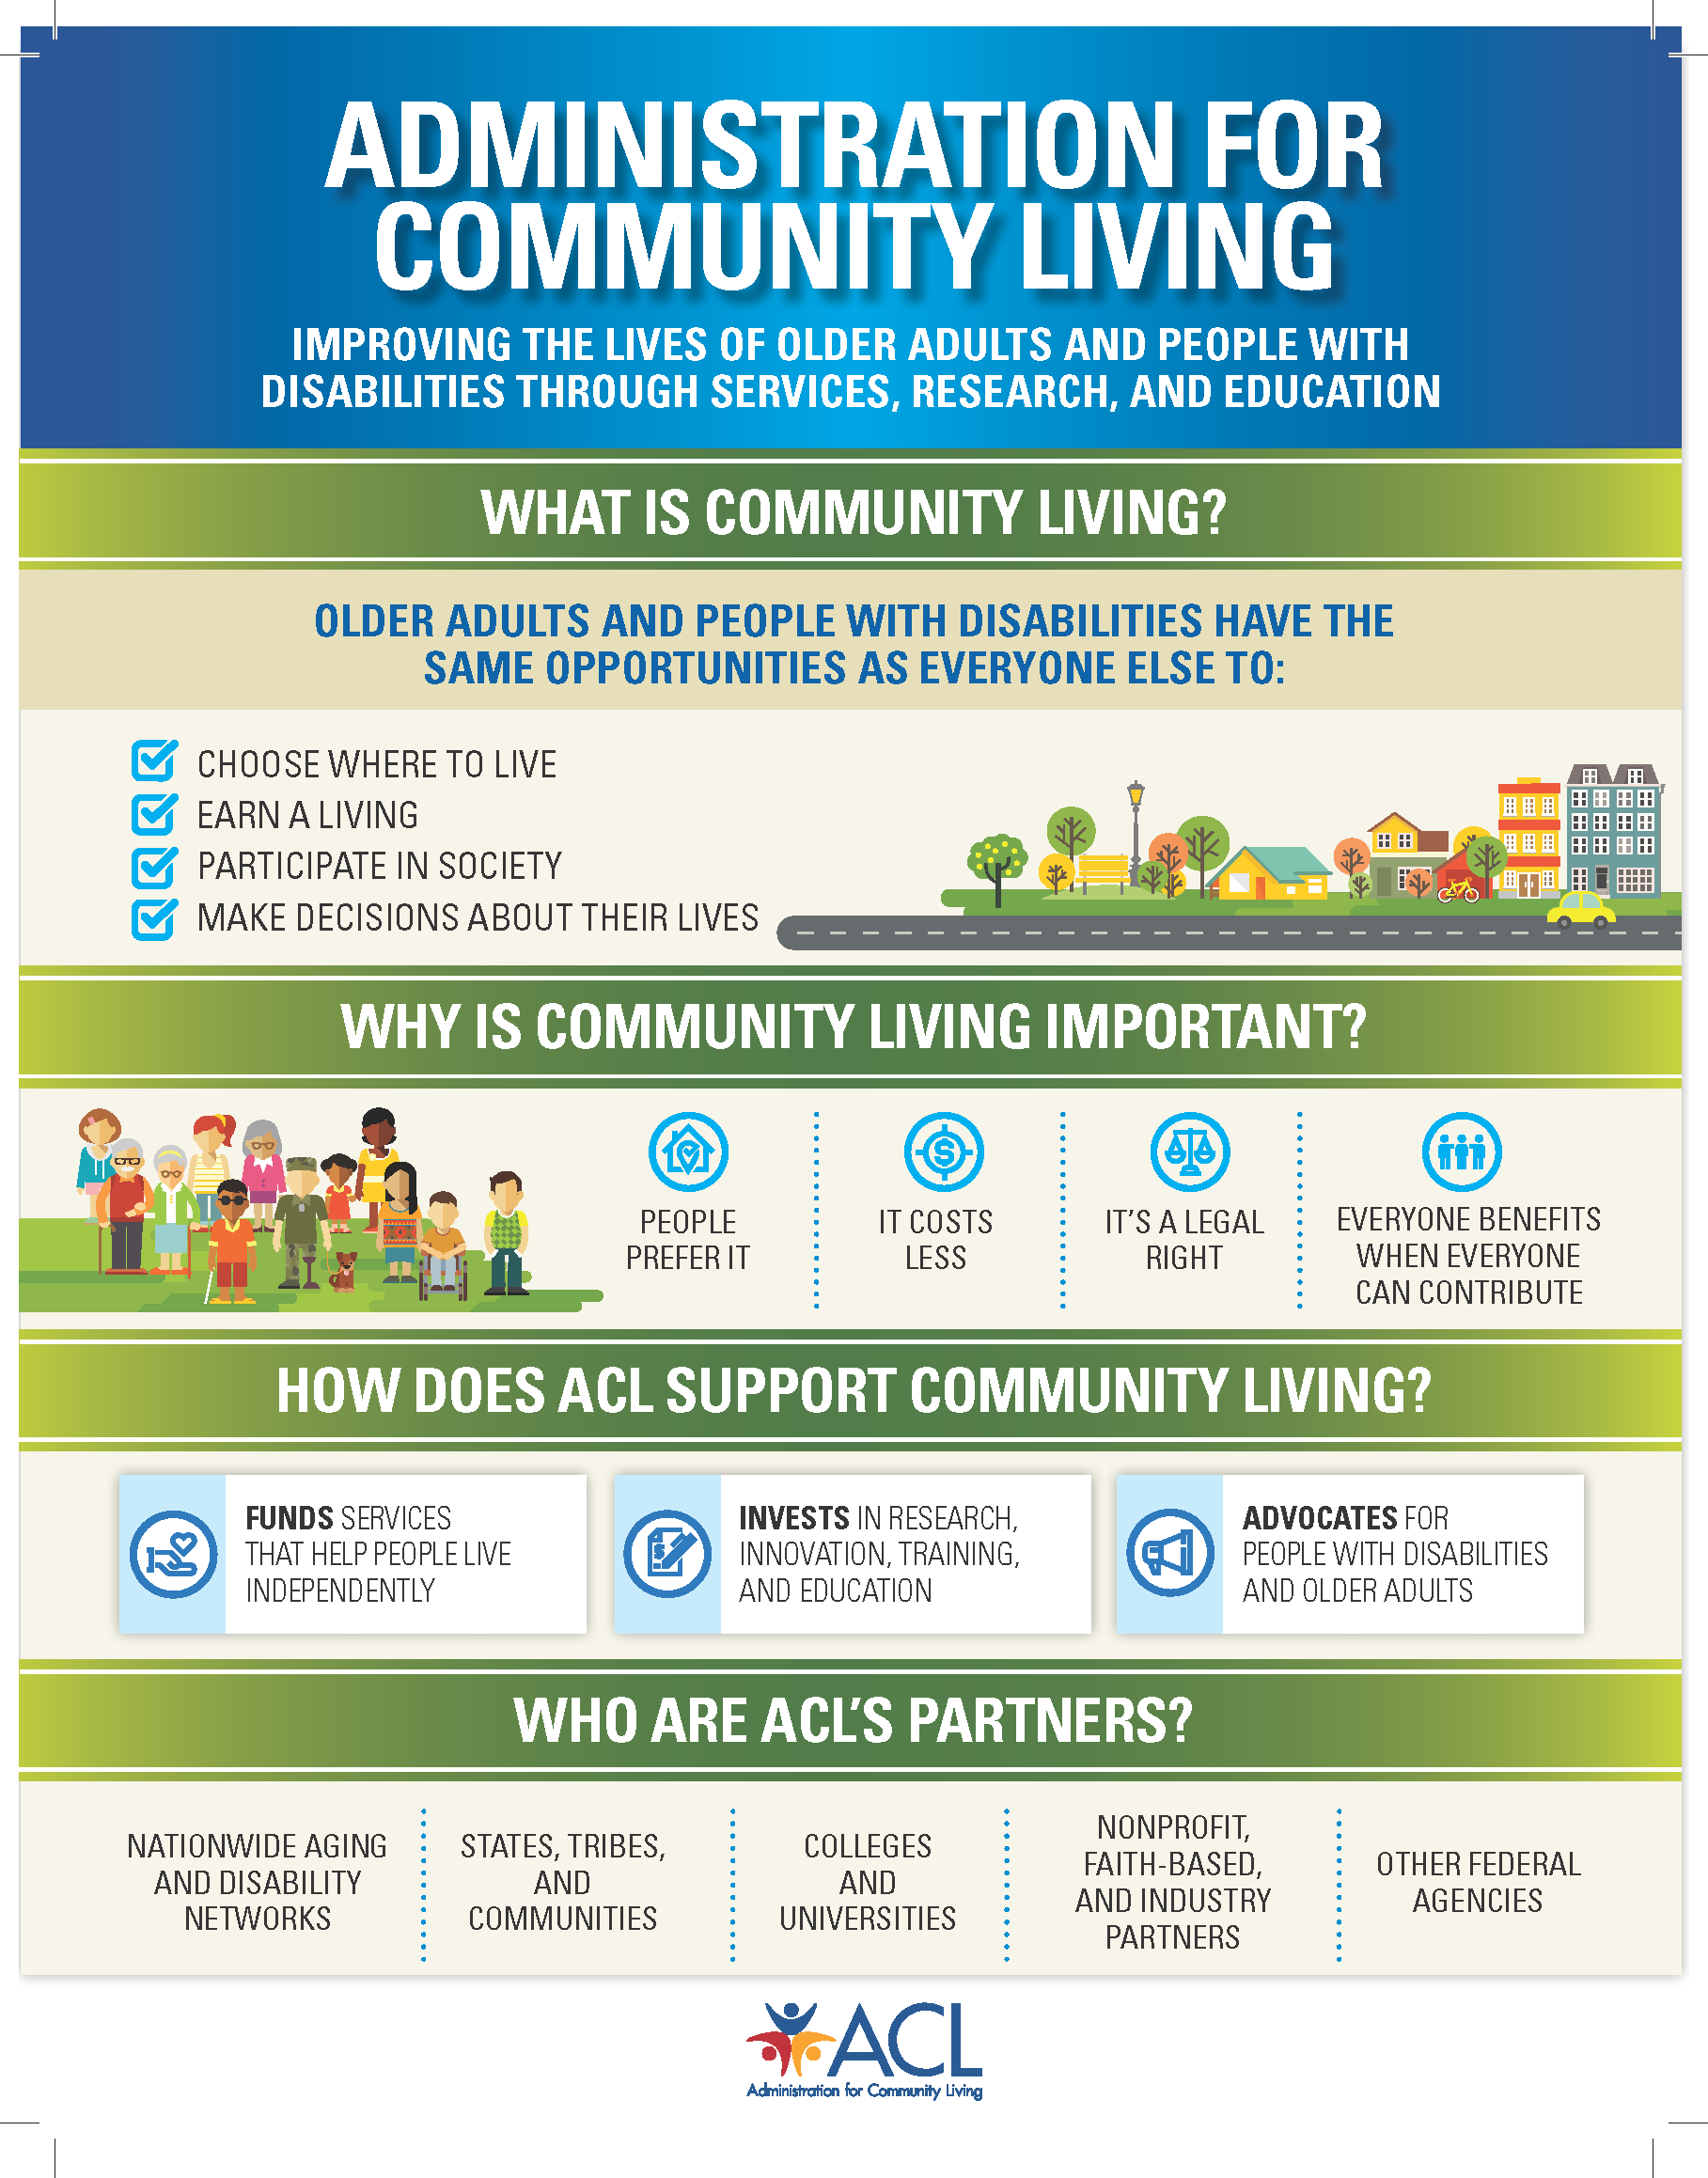 ACL Community Living Poster - Text written out below